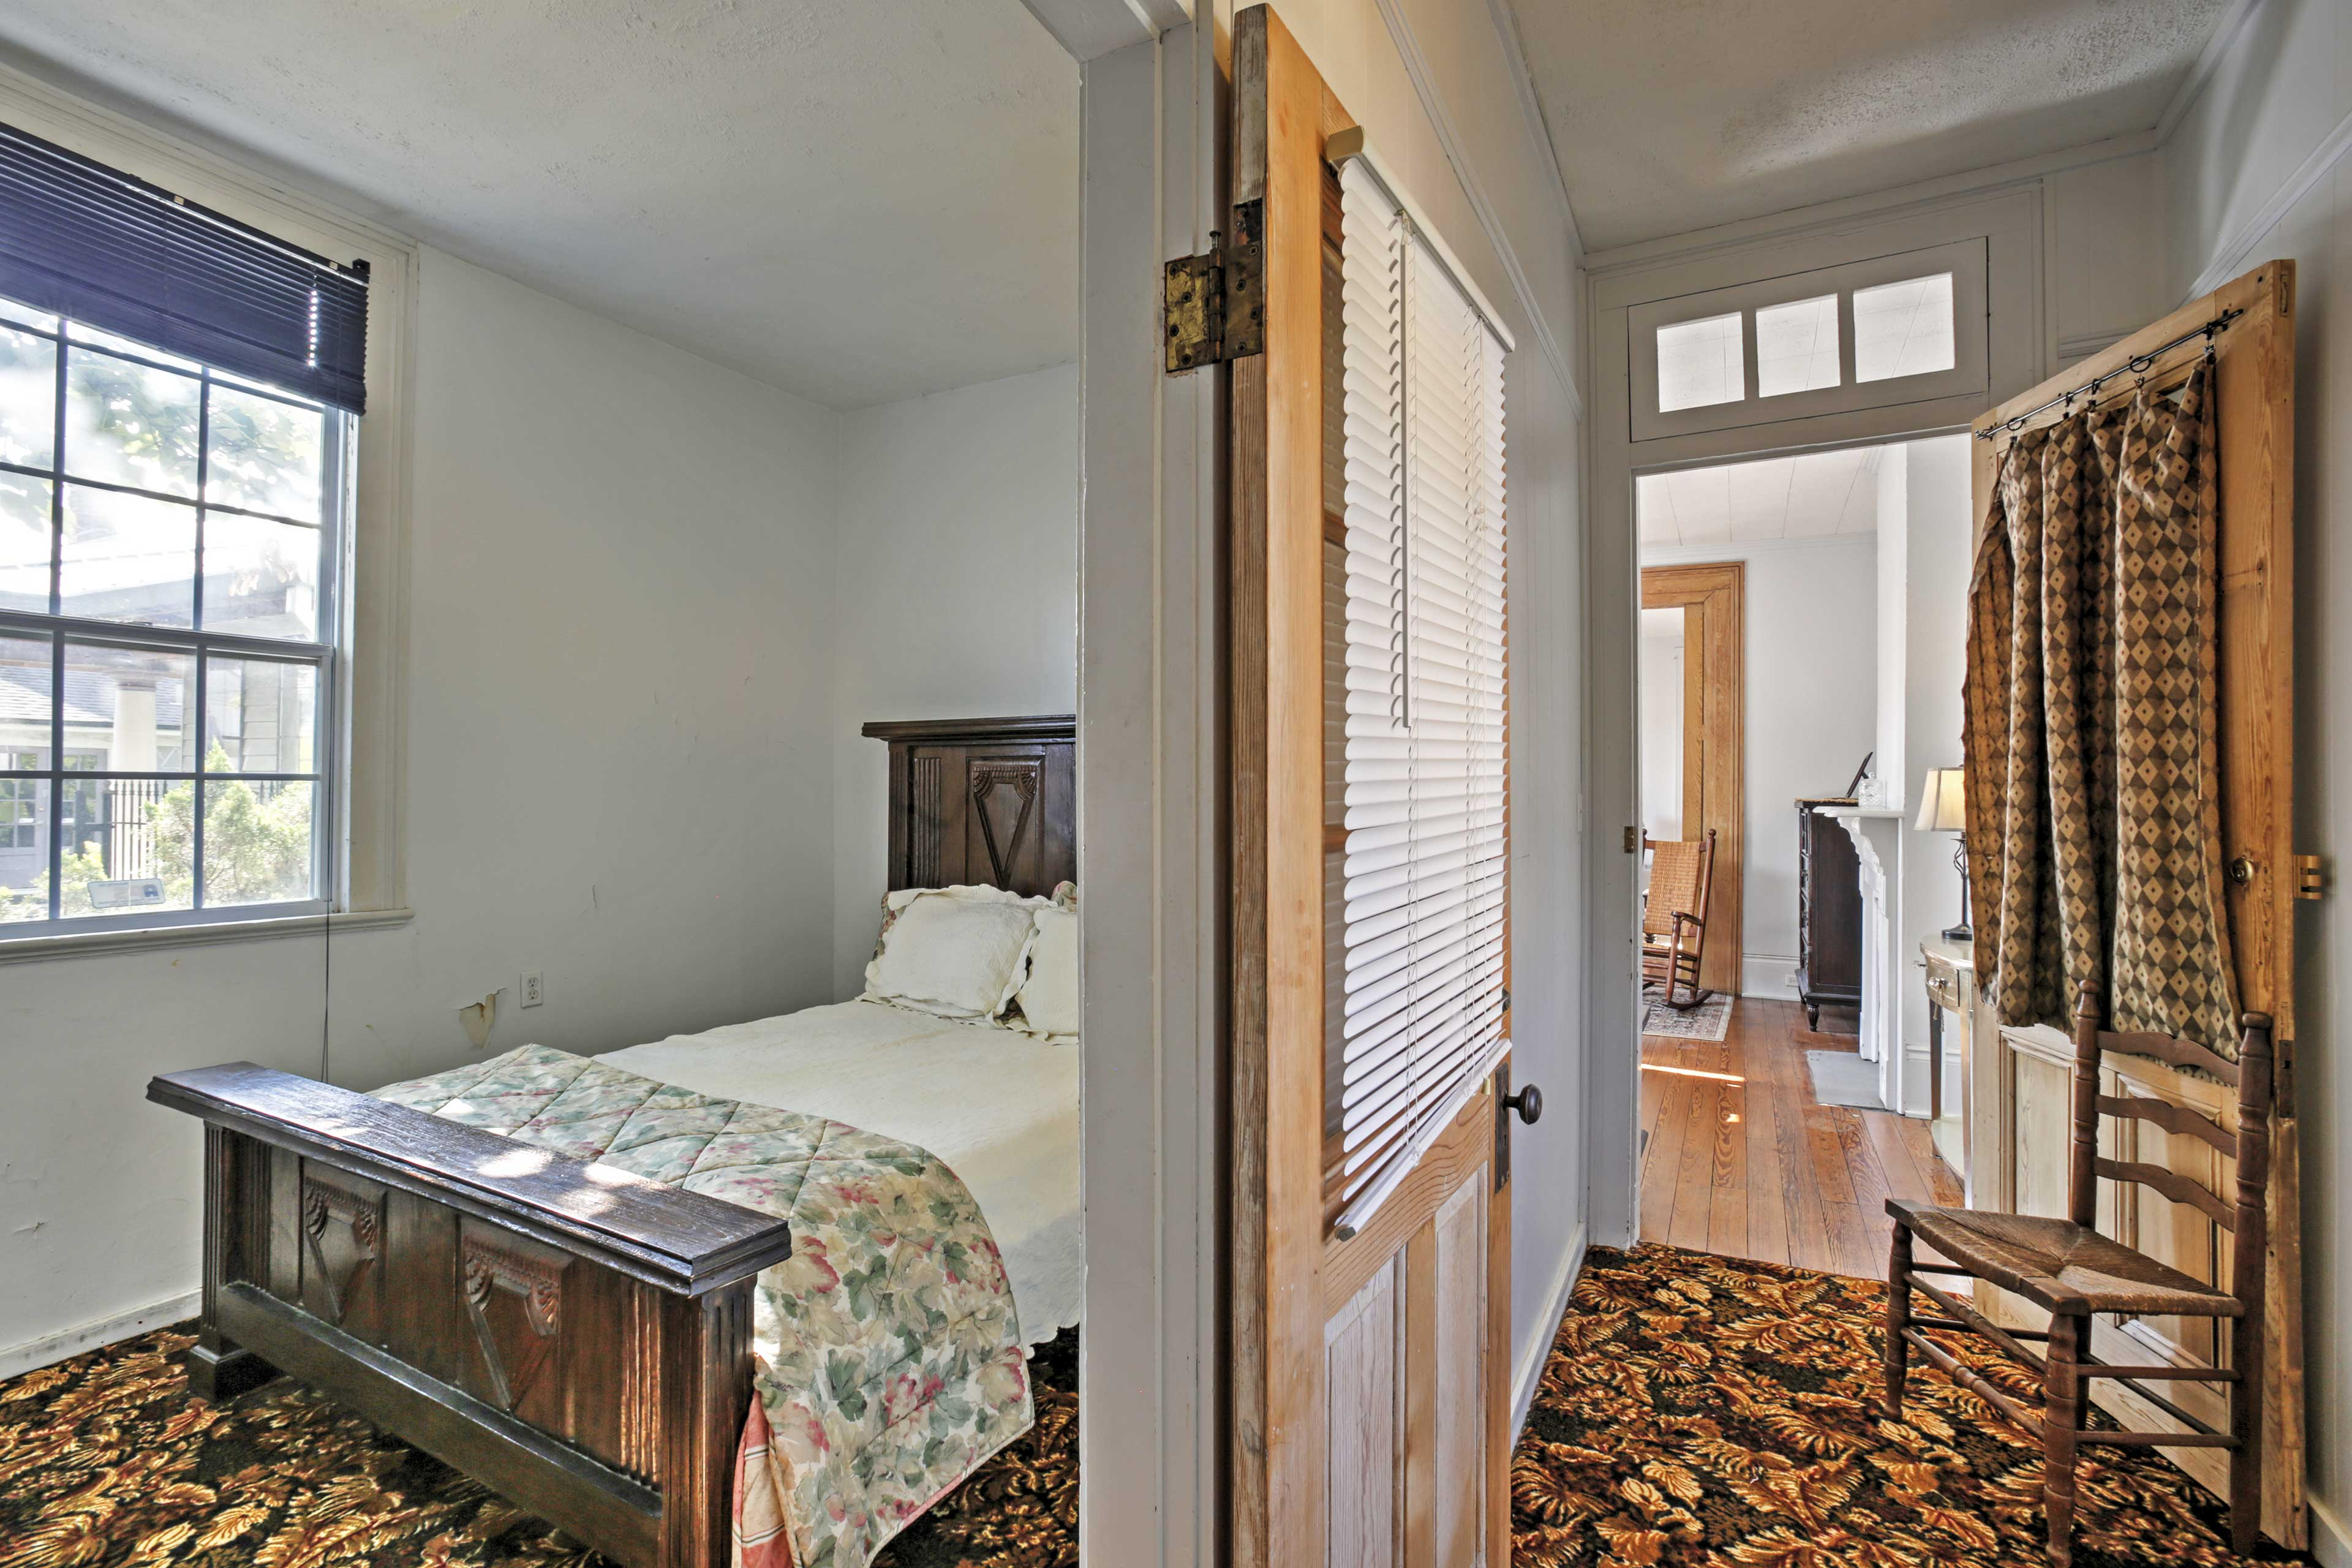 The second bedroom features a queen bed set on an antique bed frame.